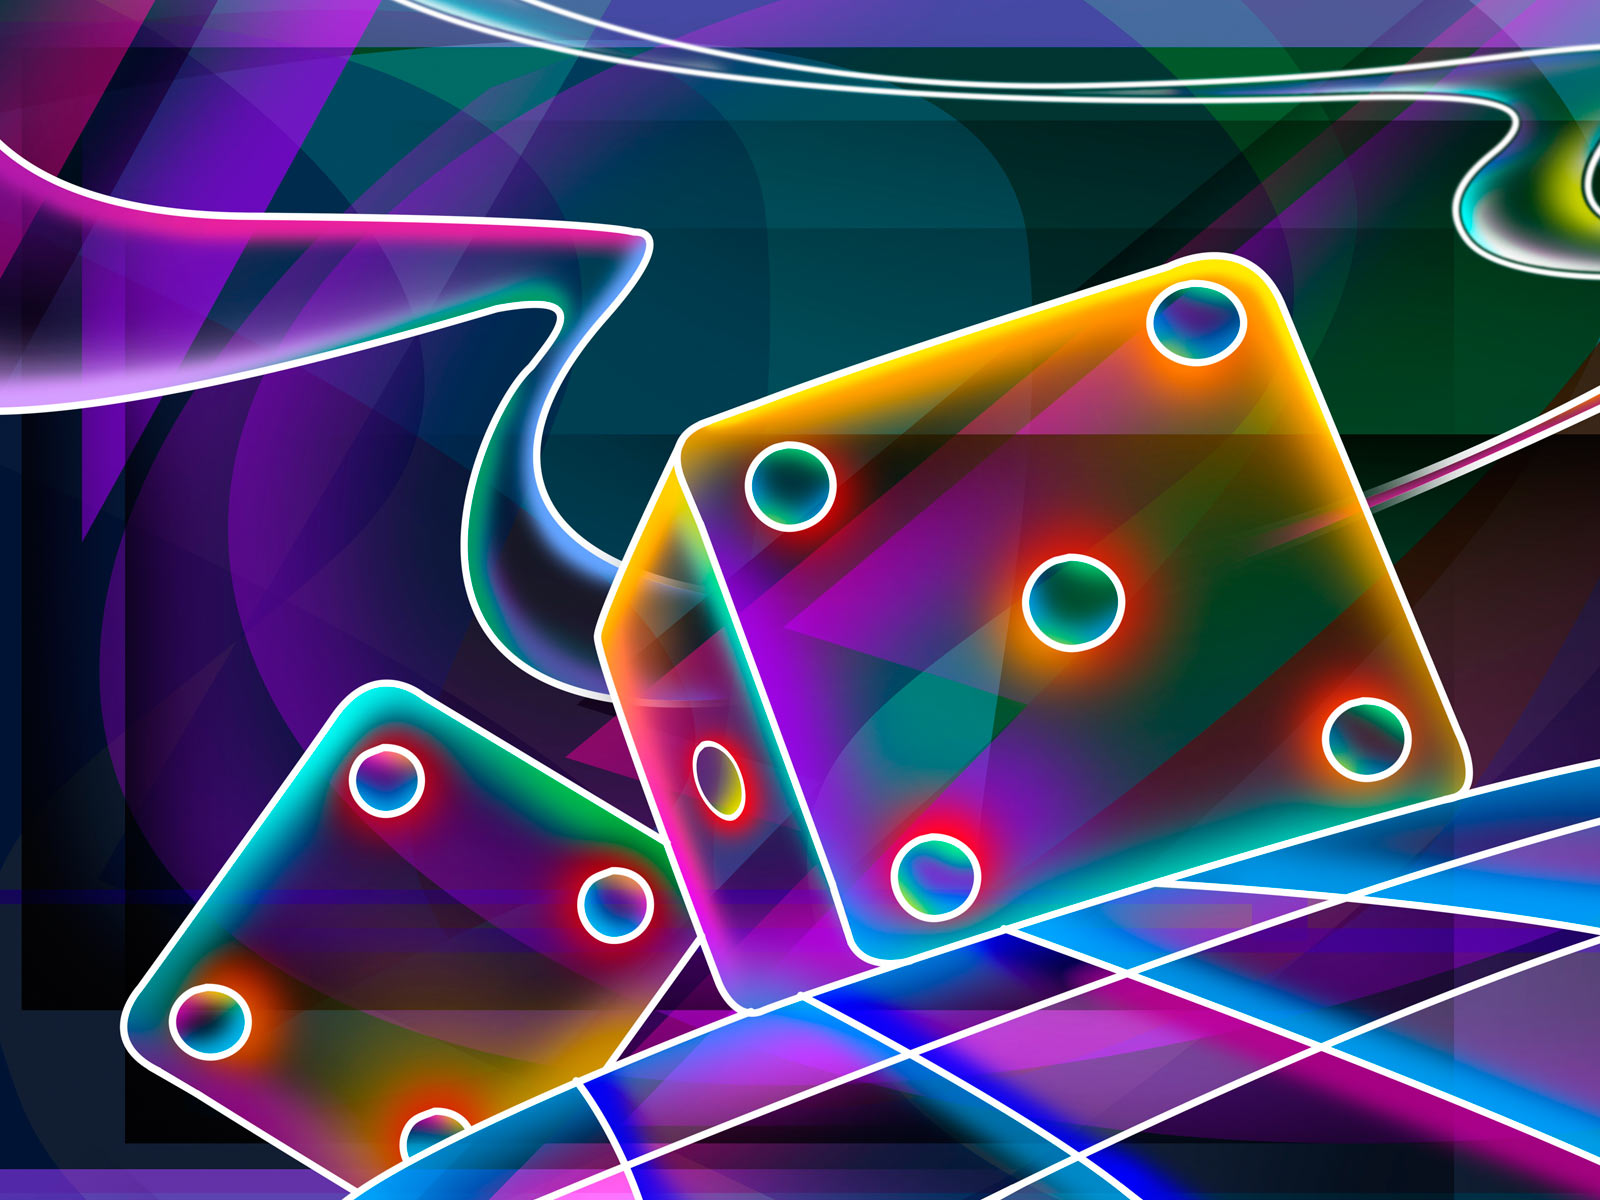 3D Wallpapers HD | A1 Wallpapers